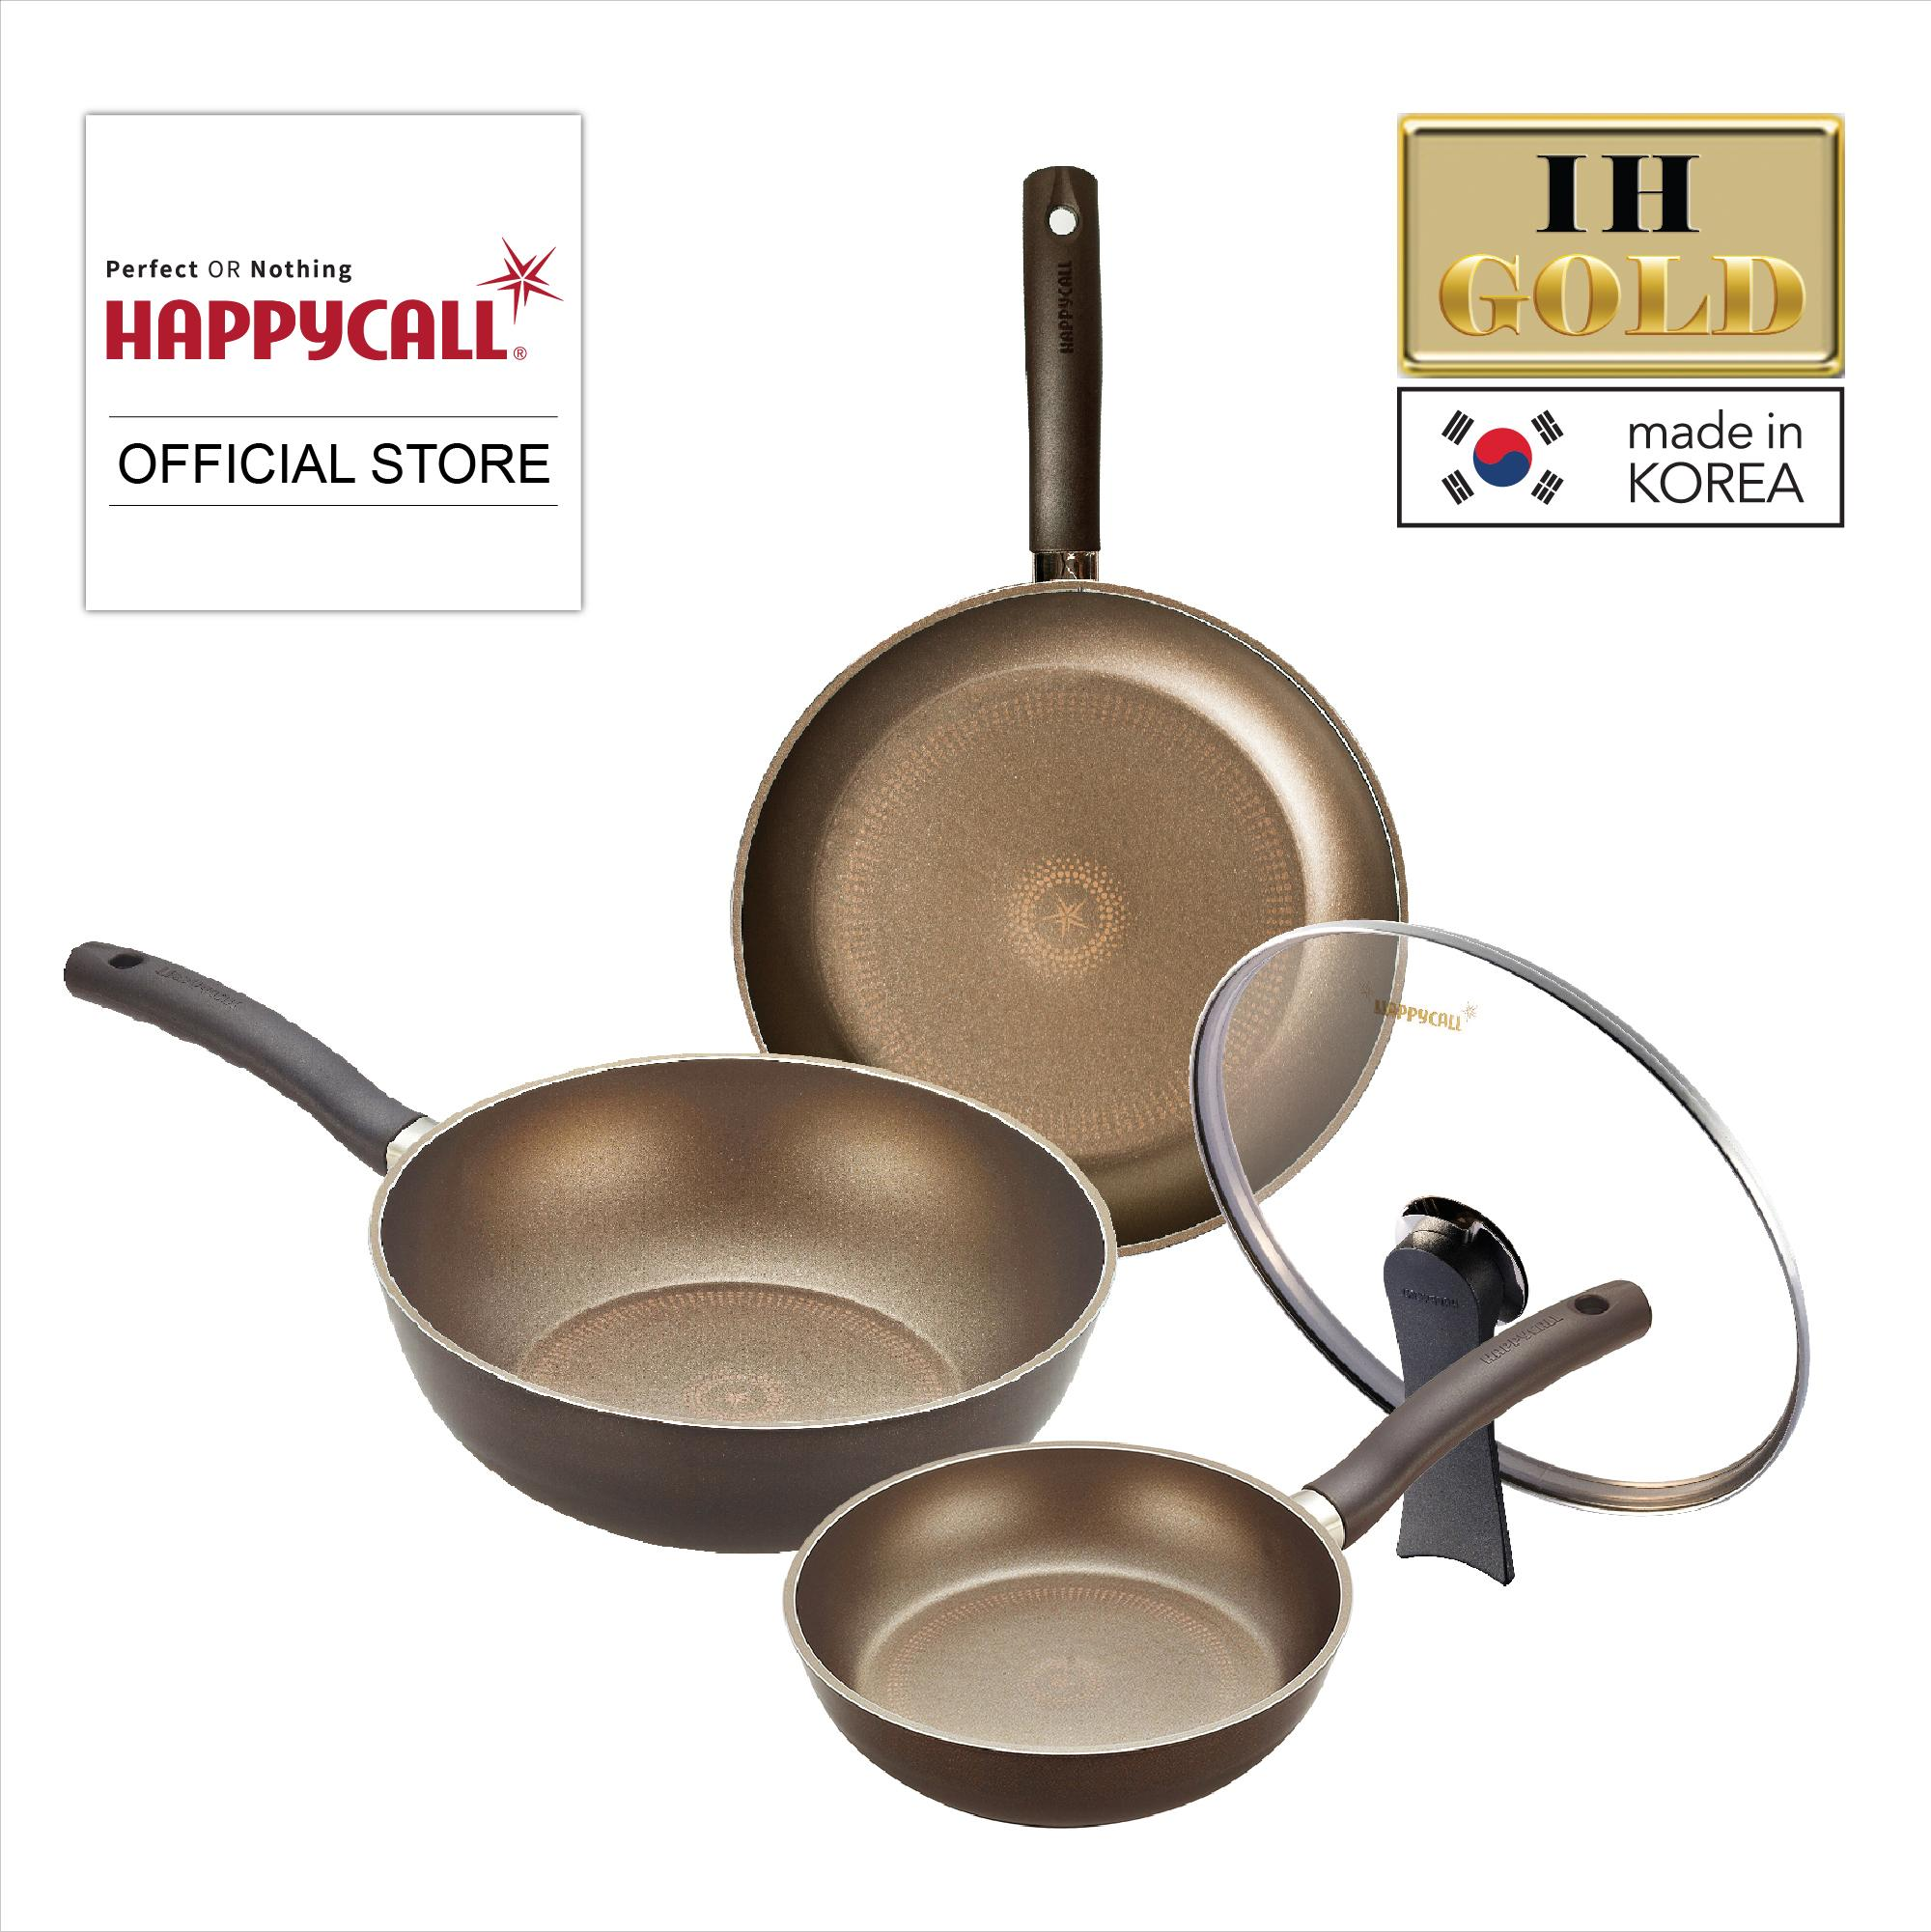 Happycall Ih Gold 4pc Cookware Set (3900-0174) - Free Pearl Life Arrange Free Double Deck Kitchen Rack (h-5799) By Heap Seng Group.